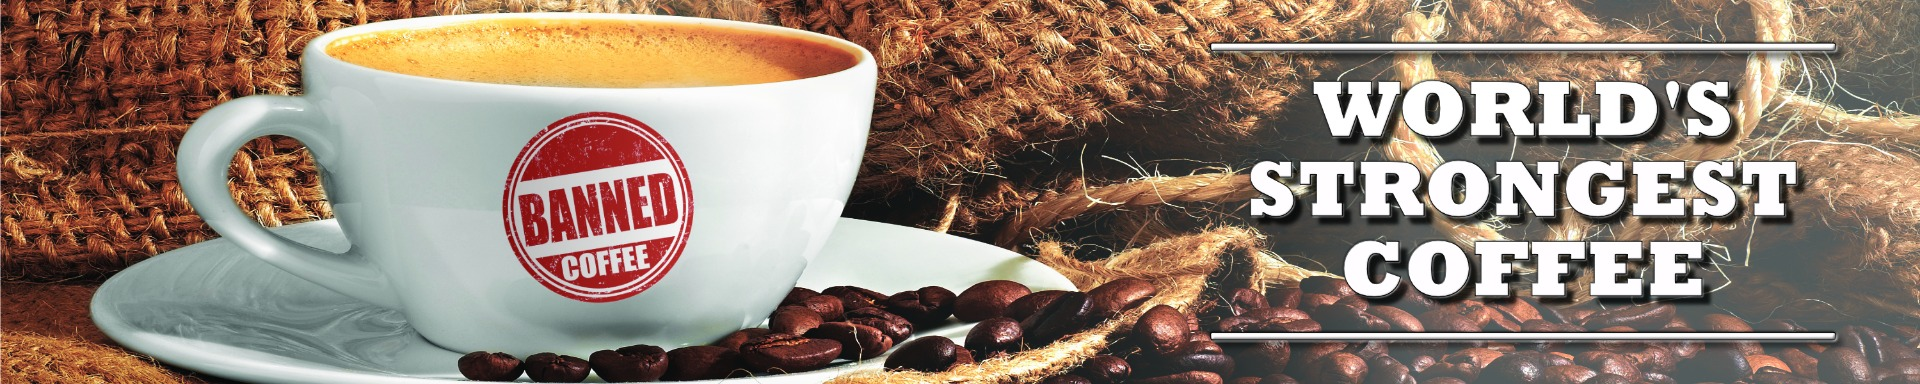 World's most Delicious Strongest Coffee